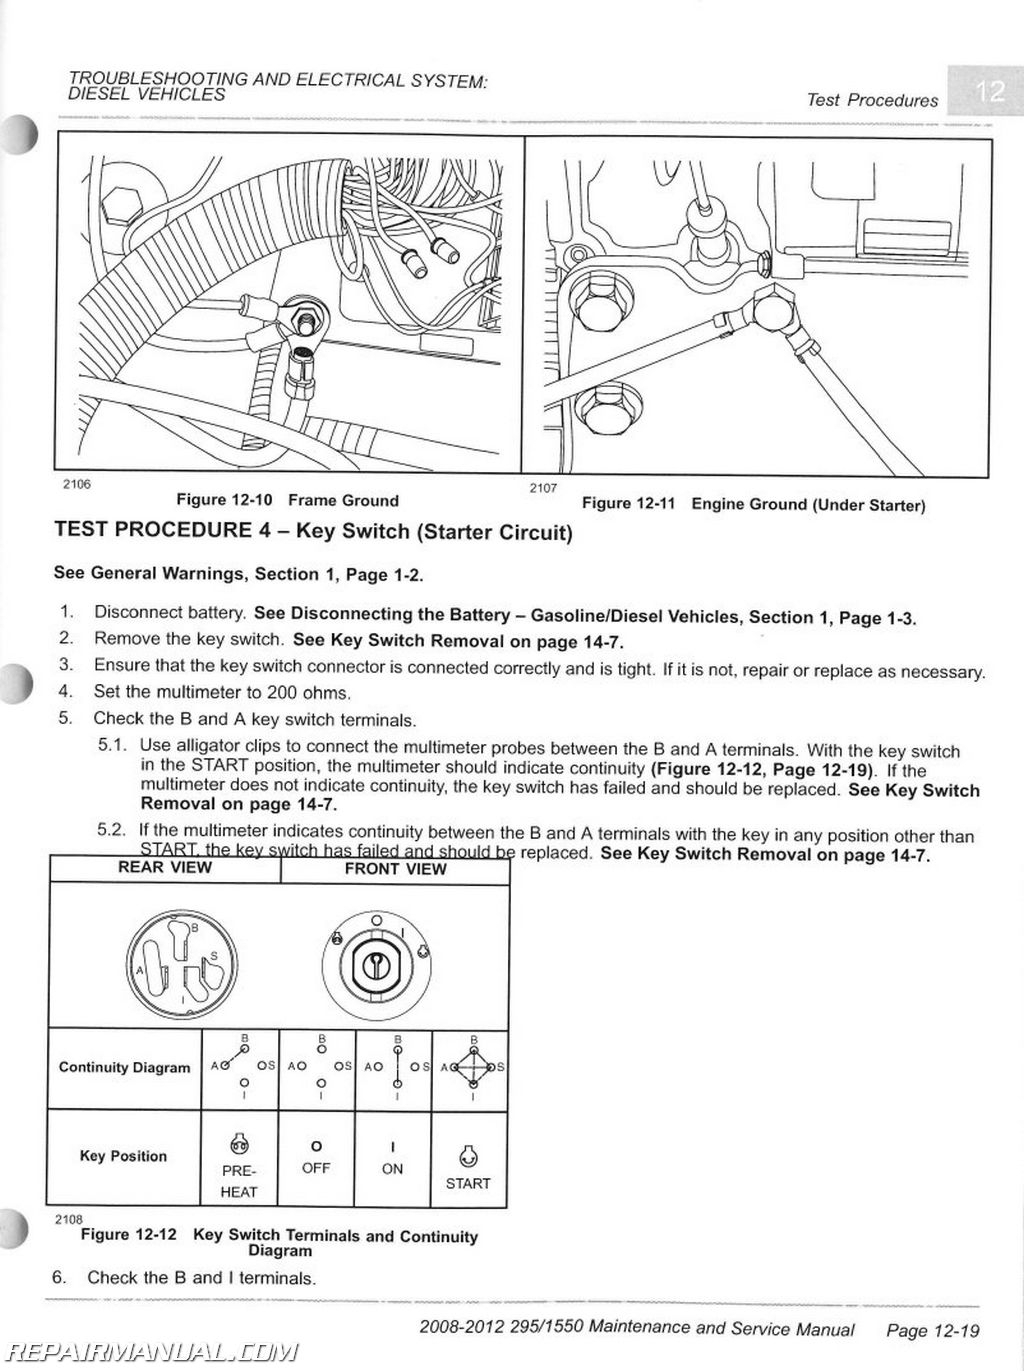 ingersoll rand club car wiring diagram in luxury parts 43 in inside club car golf cart parts diagram ingersoll rand club car wiring diagram in luxury parts 43 in Kohler Wiring Diagram Manual at soozxer.org